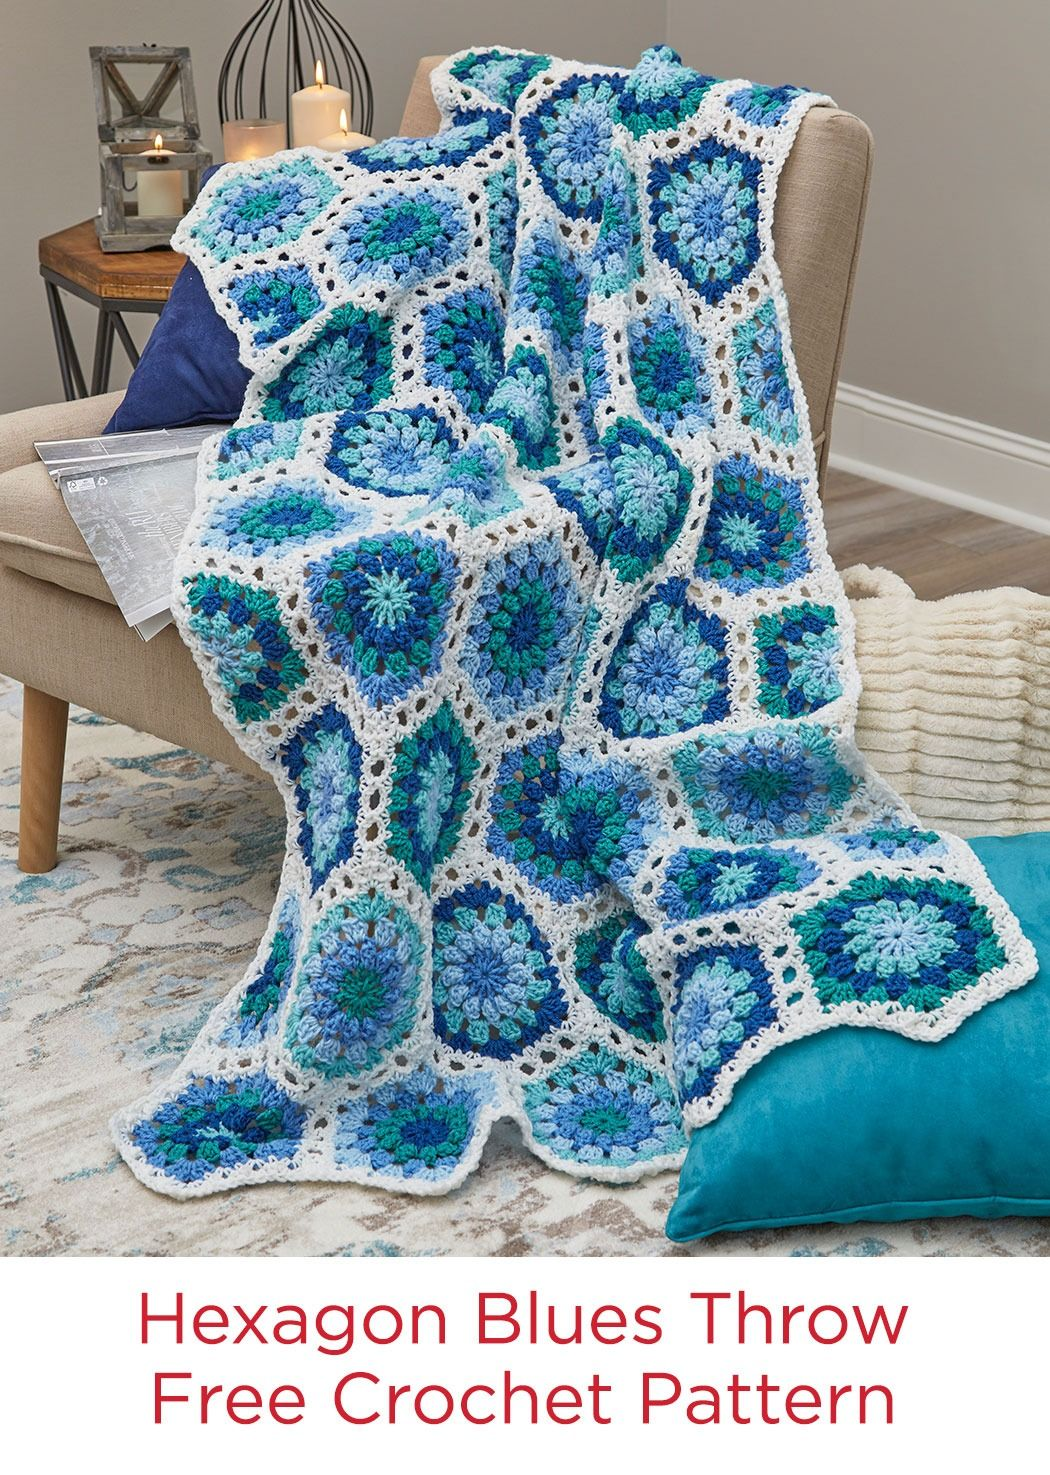 Hexagon Blues Throw Free Crochet Pattern in Red Heart Super